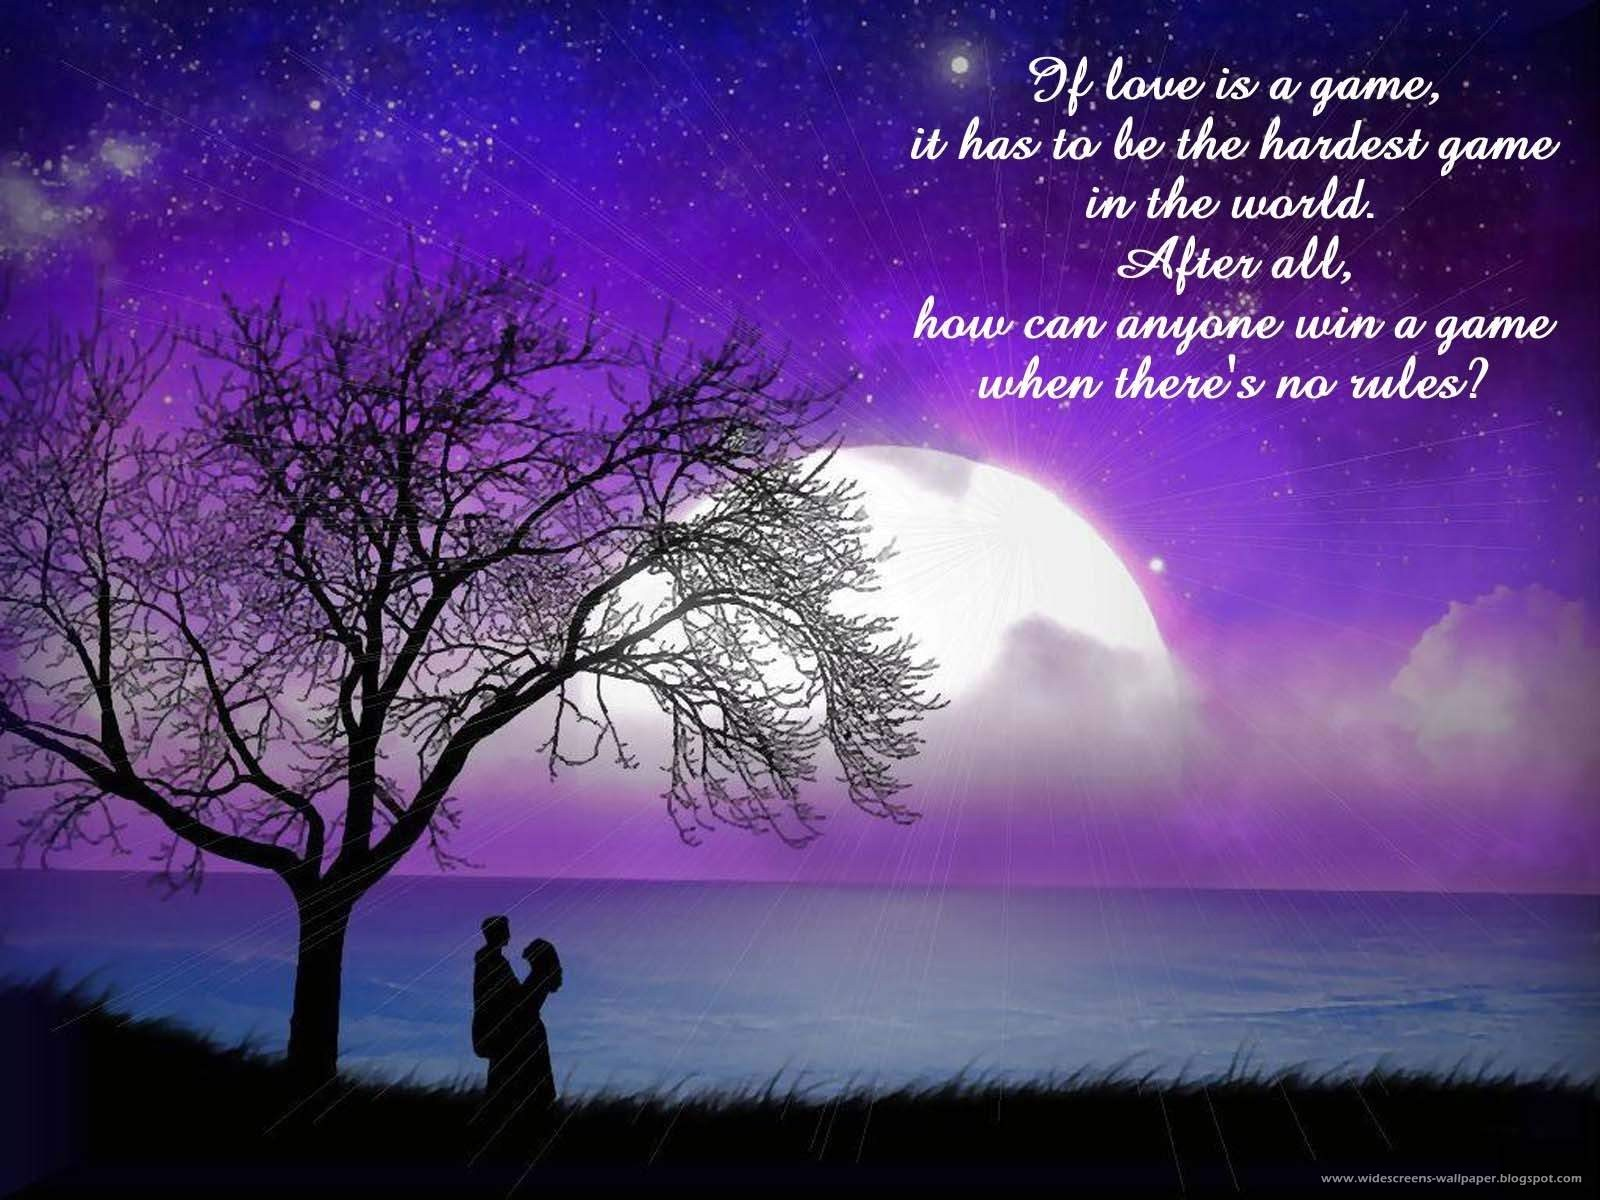 Night moon couple love quotes night wallpapers moon wallpapers sayin wallpapers free qoutes wallpapers 1600 x 1200 resolution